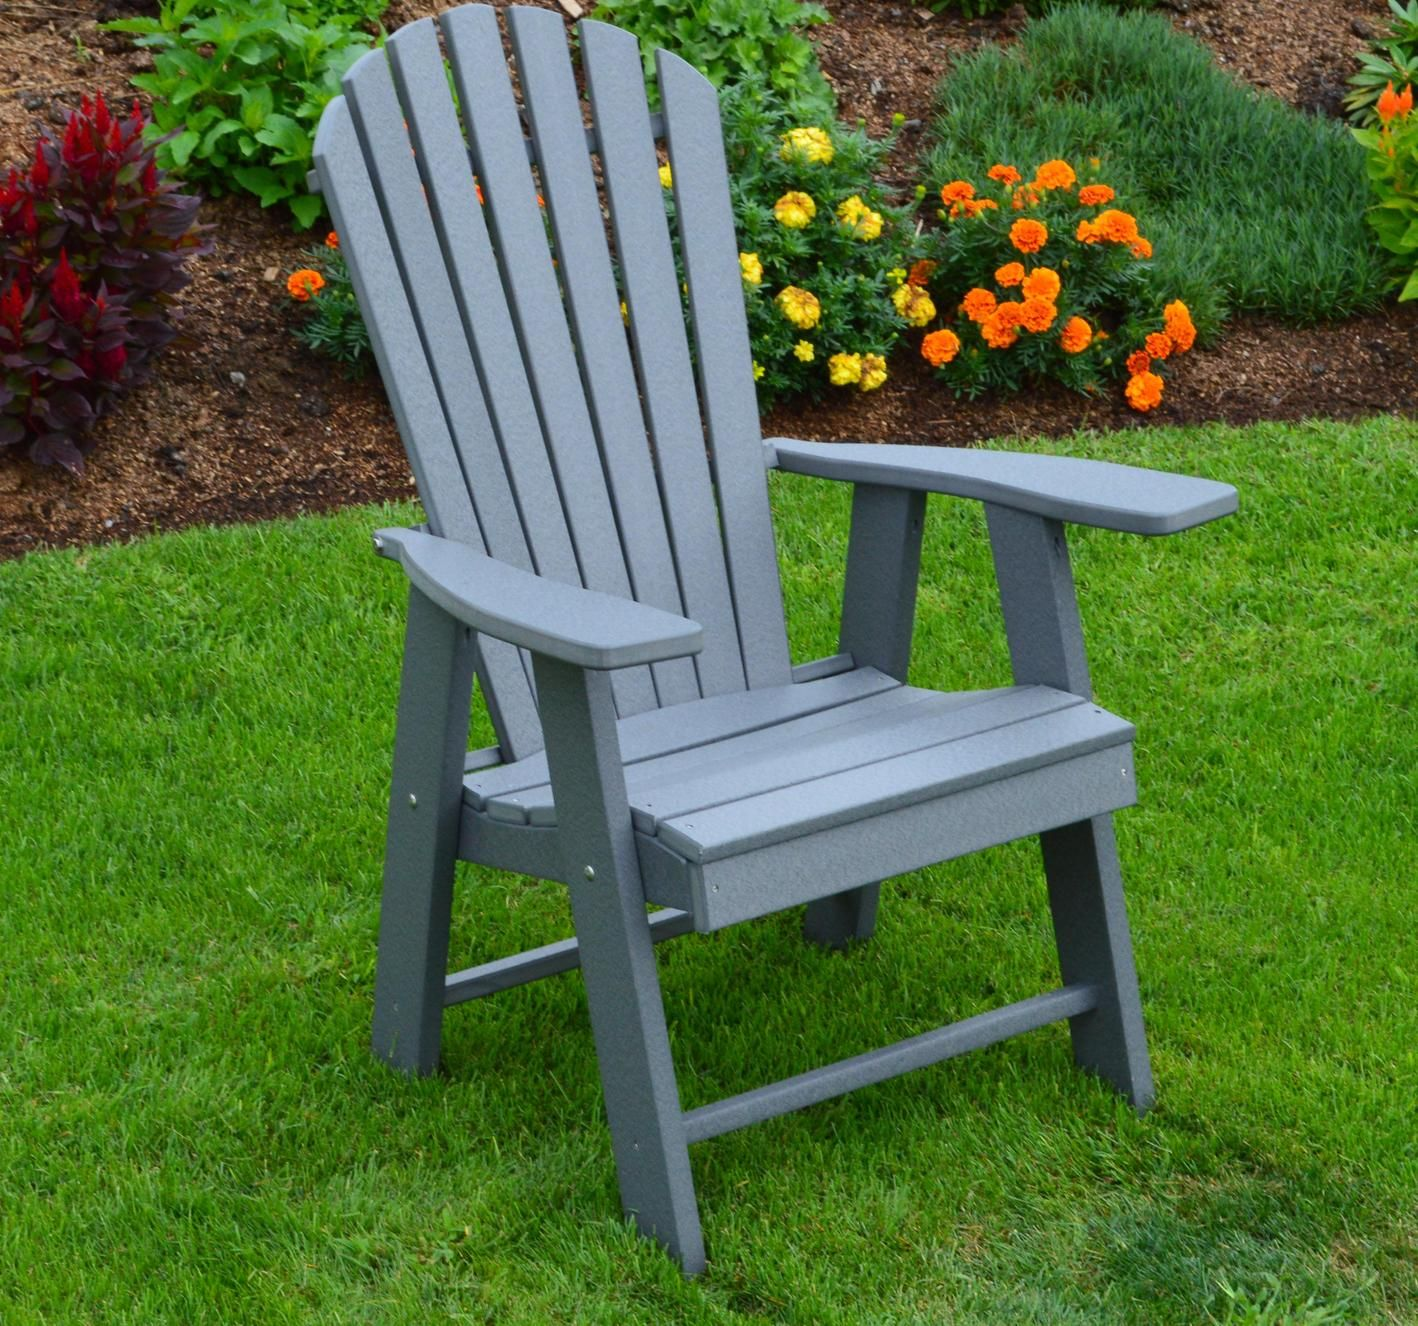 A & L Furniture Recycled Plastic Upright Adirondack Chair - LEAD